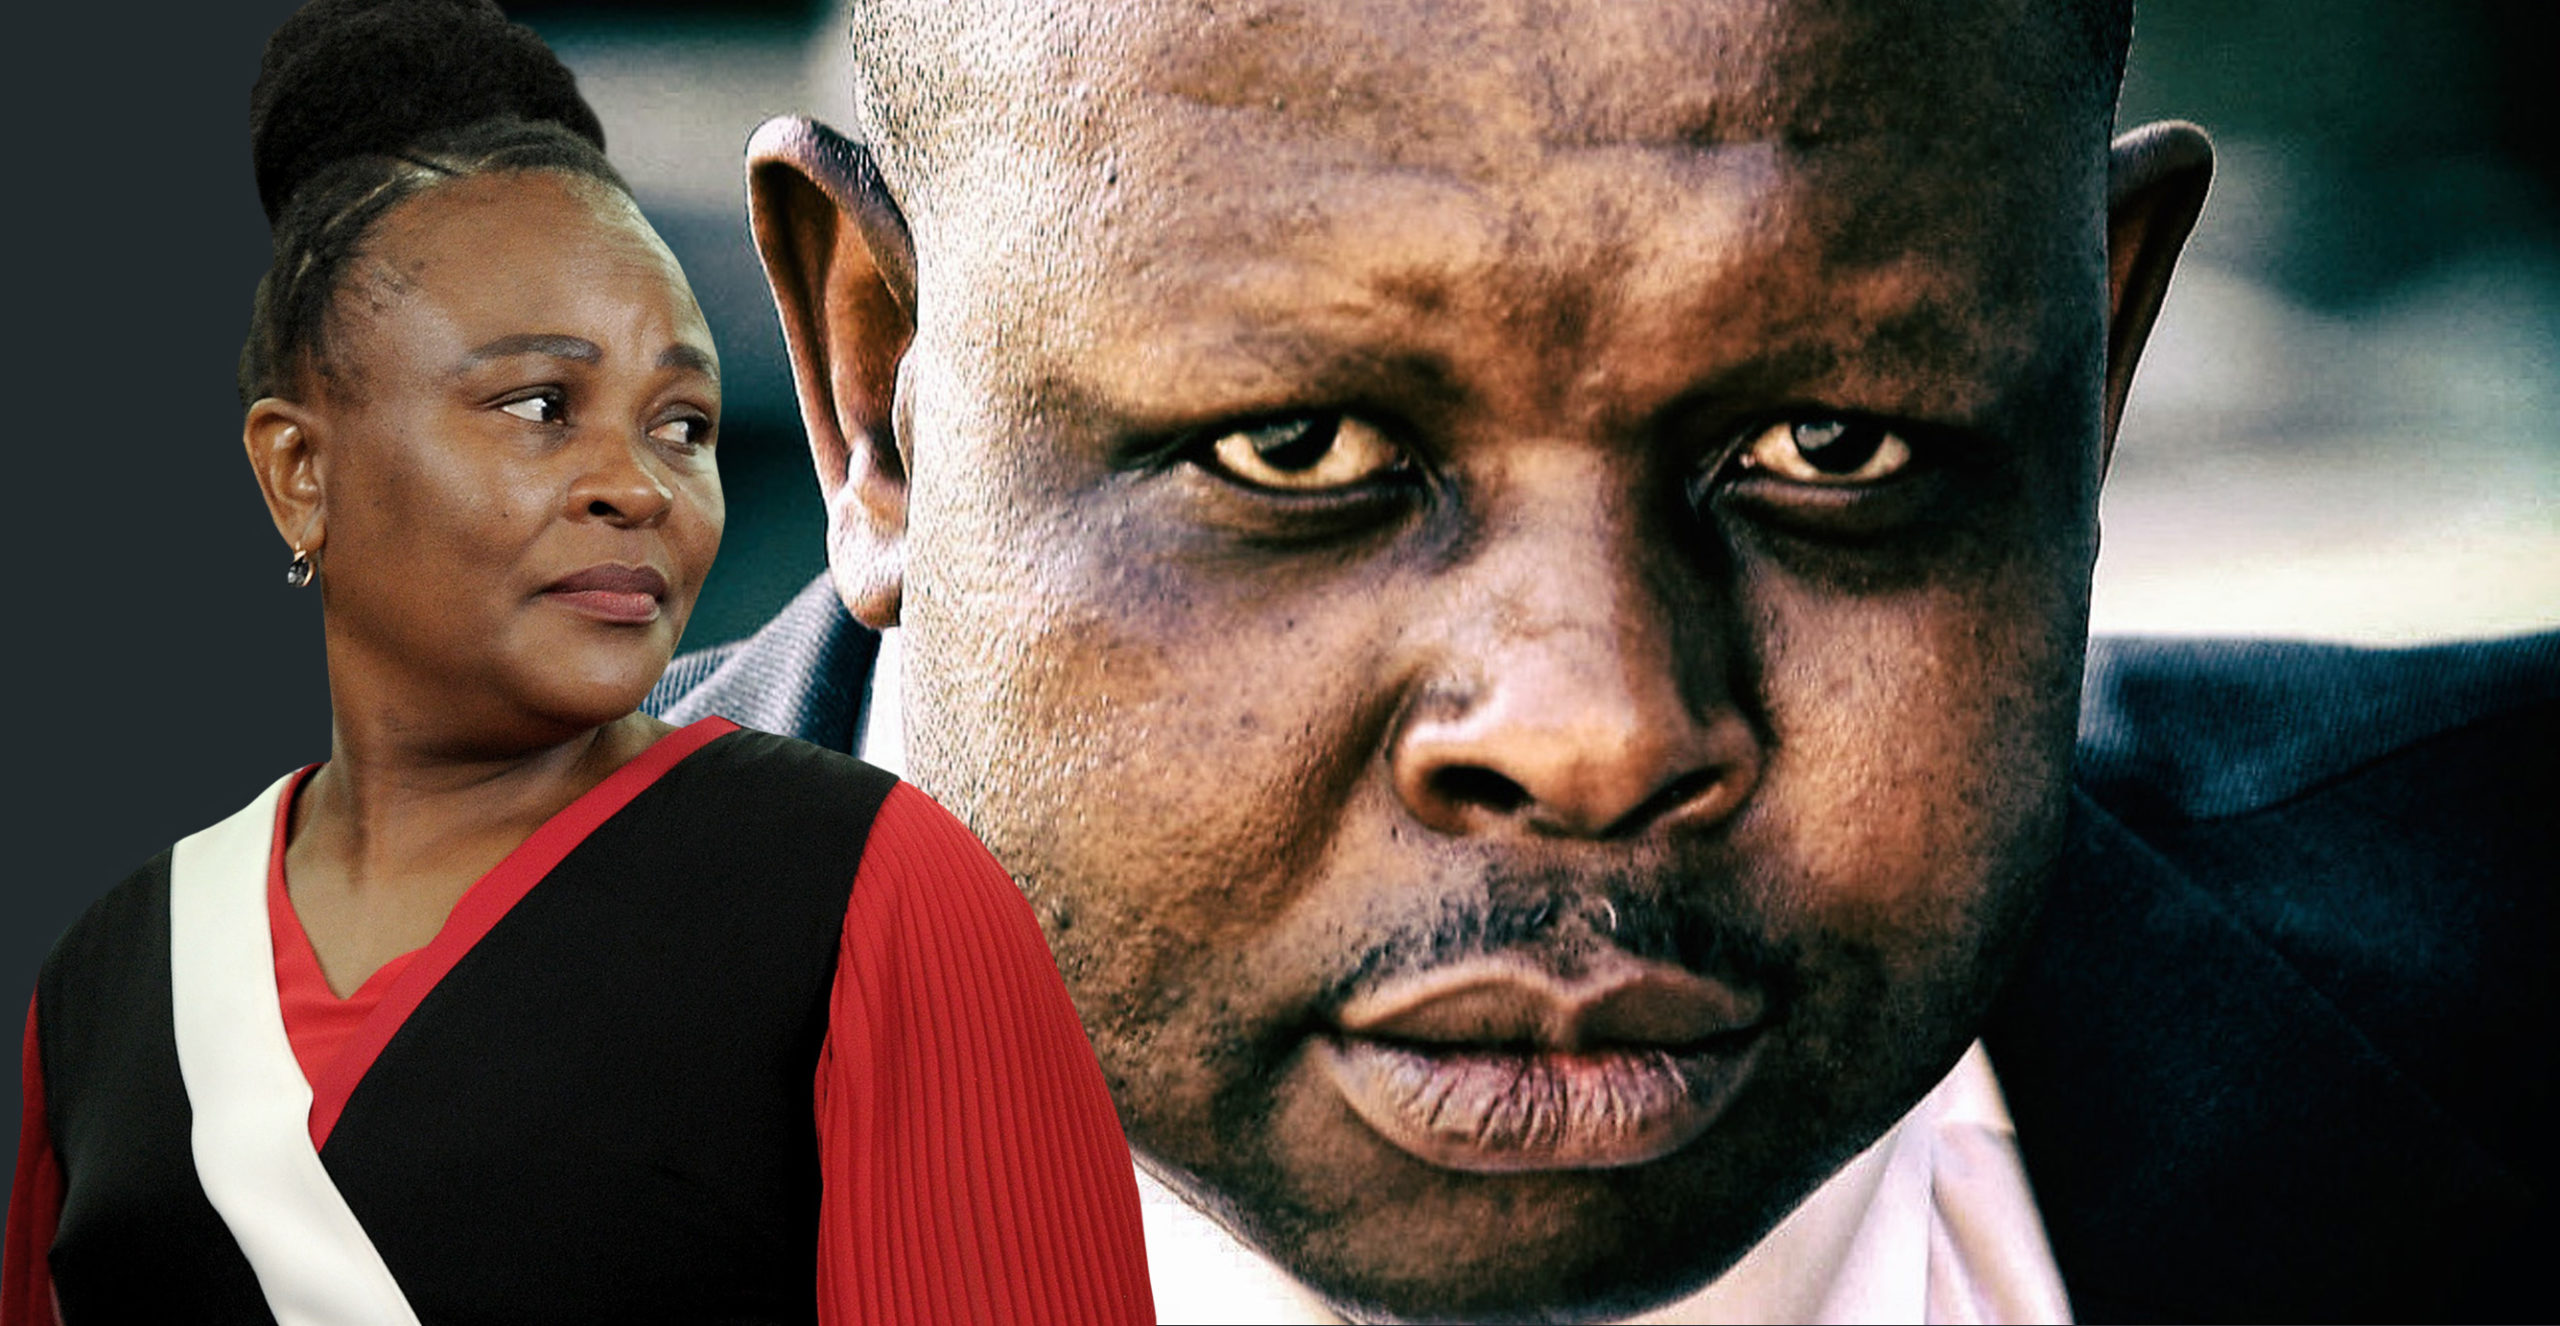 CHIEF JUSTICE SHORTLIST: Casac, Helen Suzman Foundation submit concerns that Mkhwebane and Hlophe 'not fit and proper' contenders for top ConCourt post